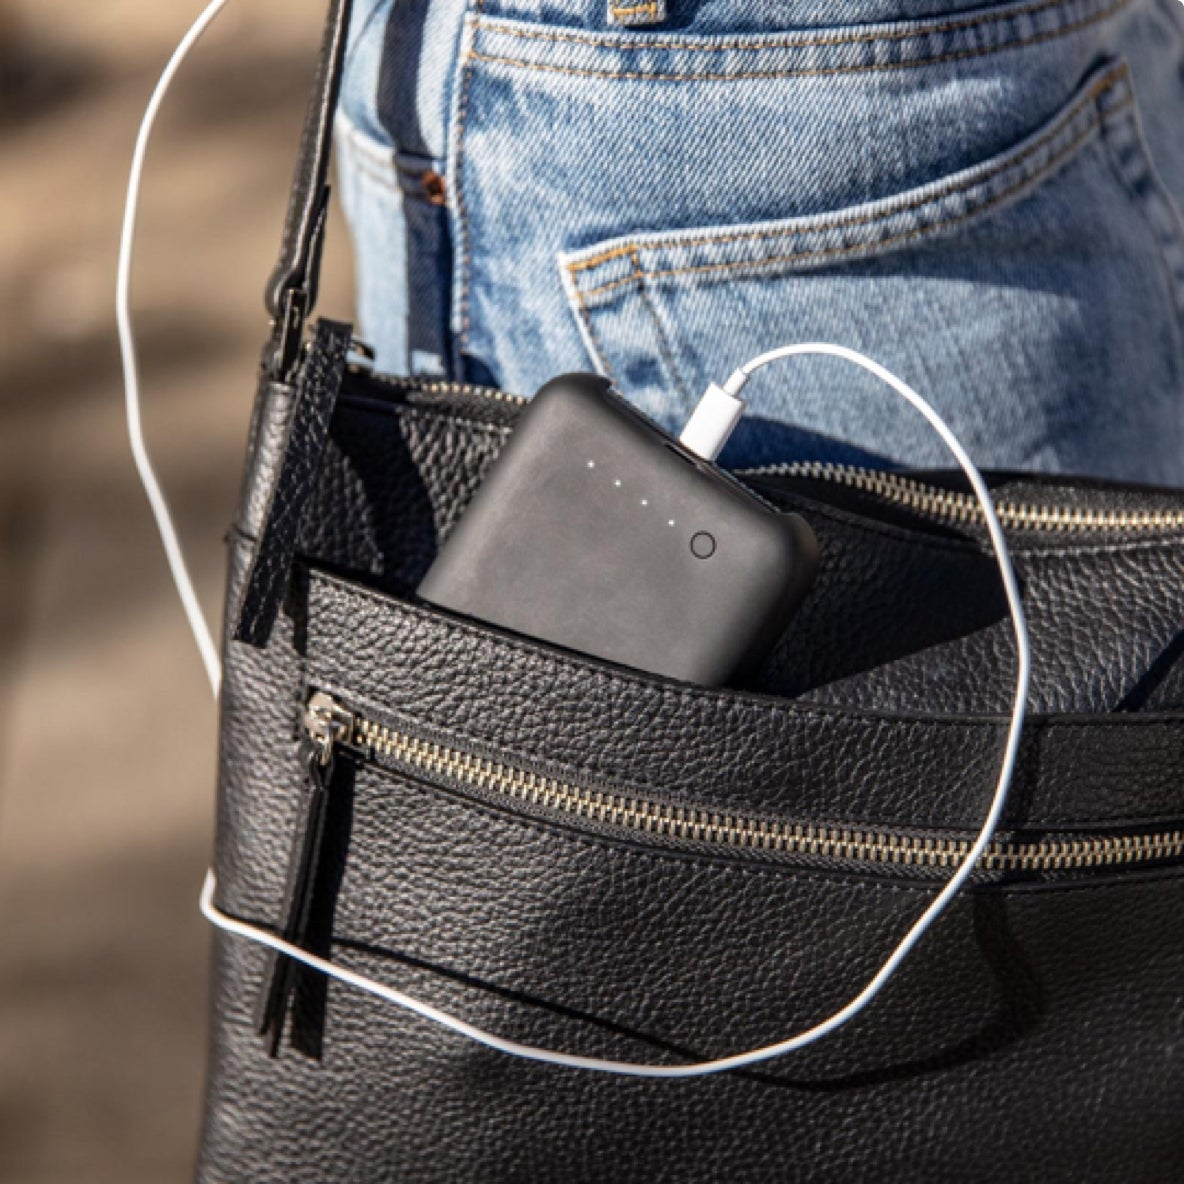 A mobile phone peaking out of a purse